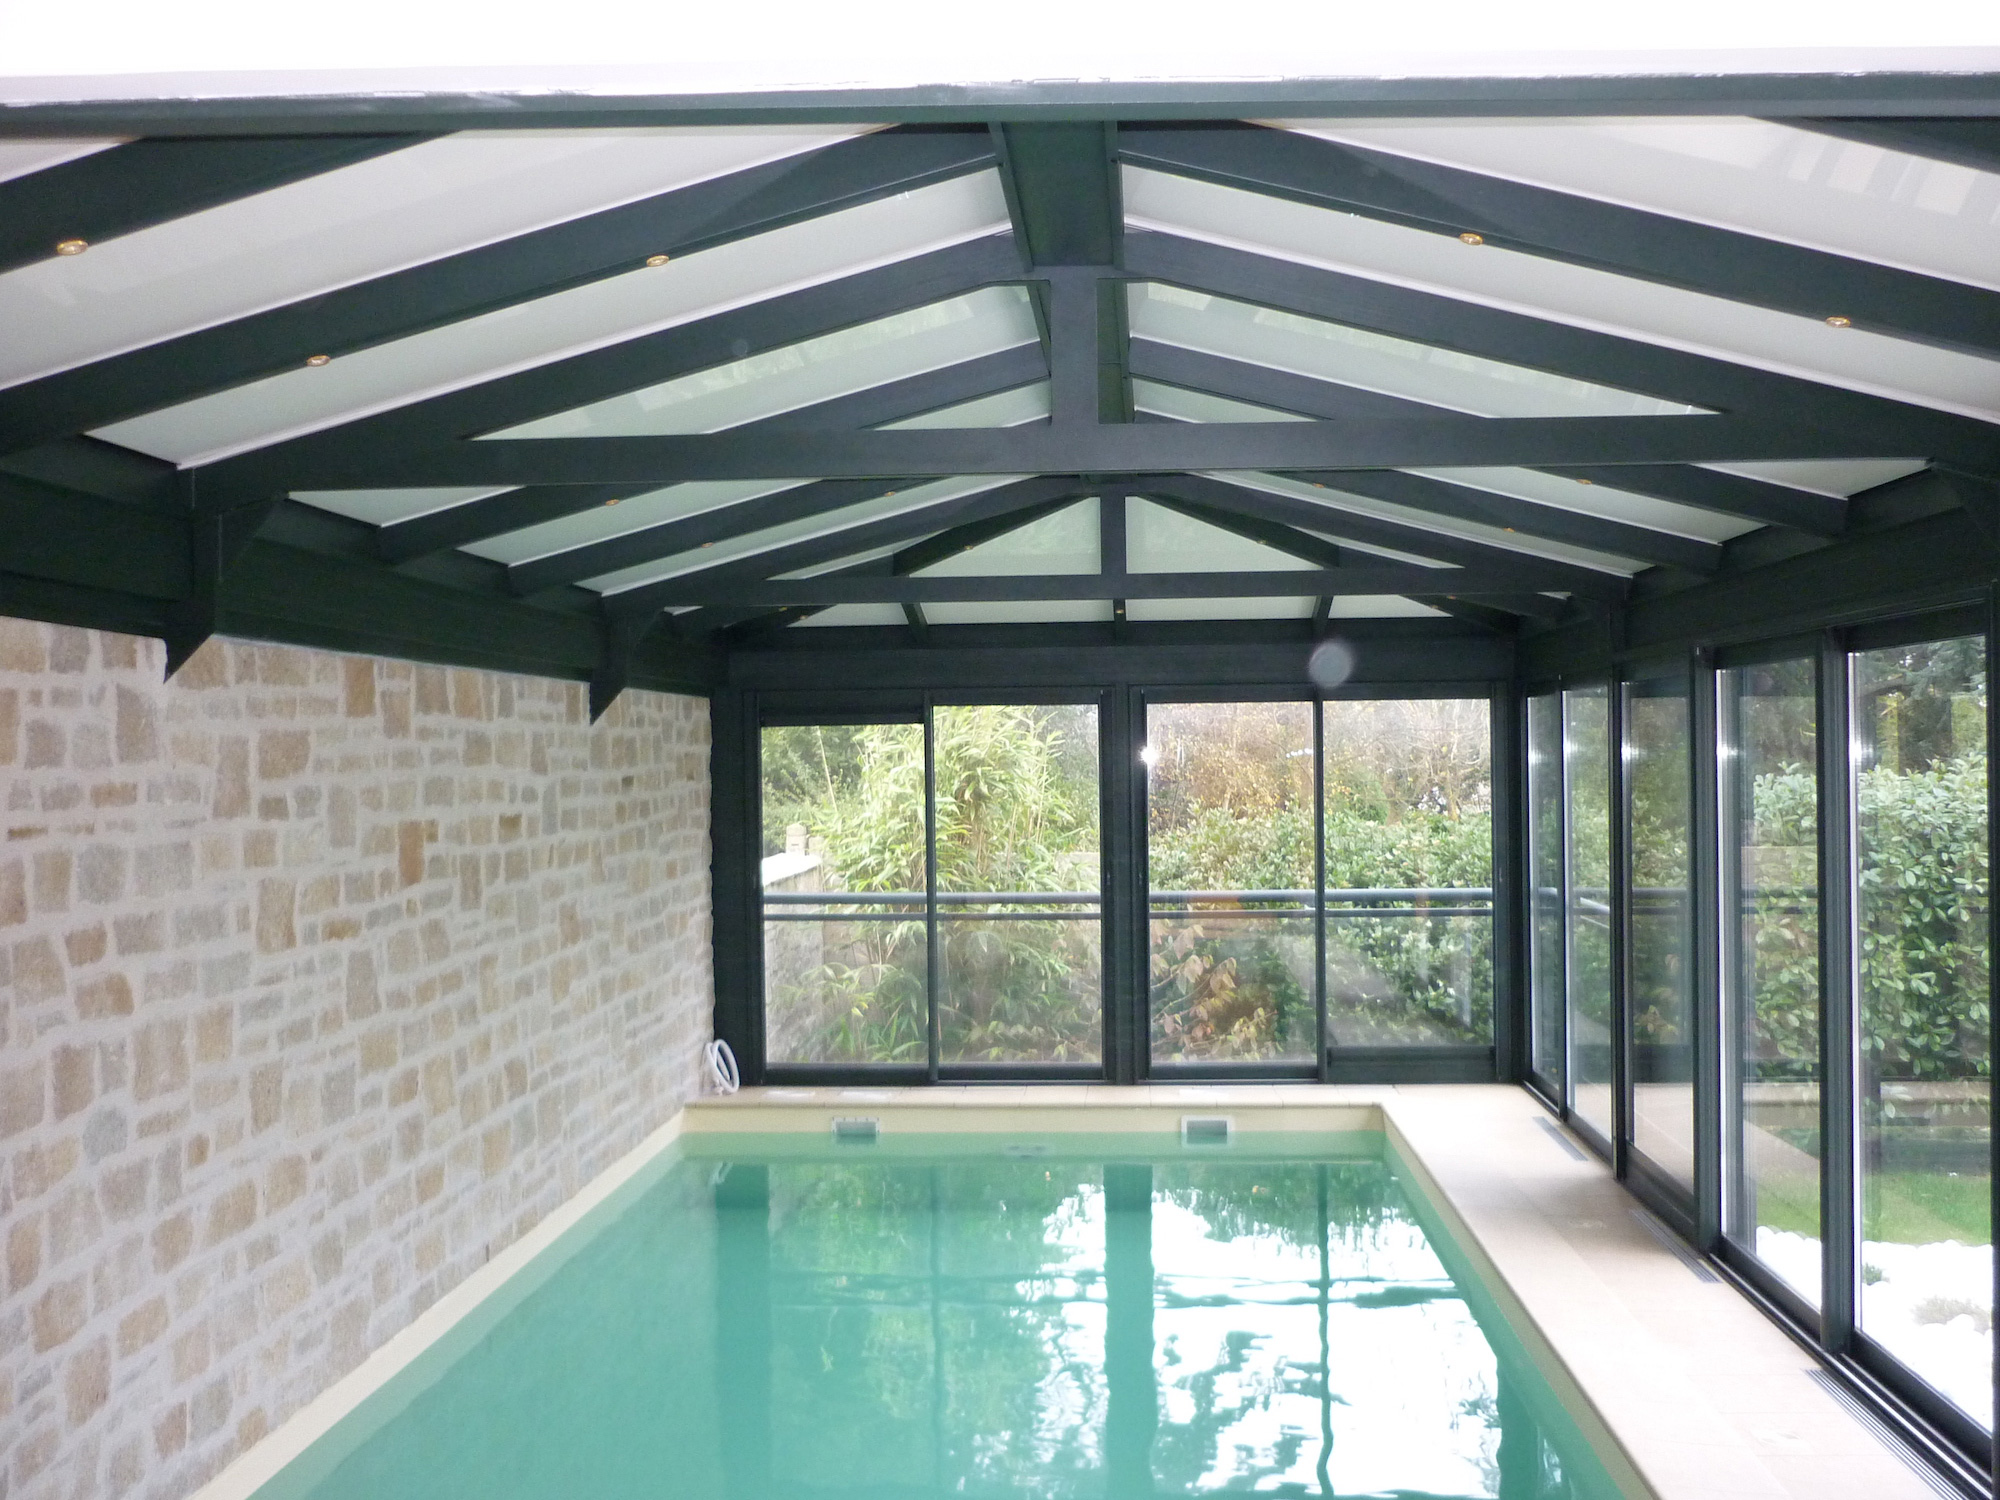 Veranda piscine design fillonneau for Veranda pour piscine prix